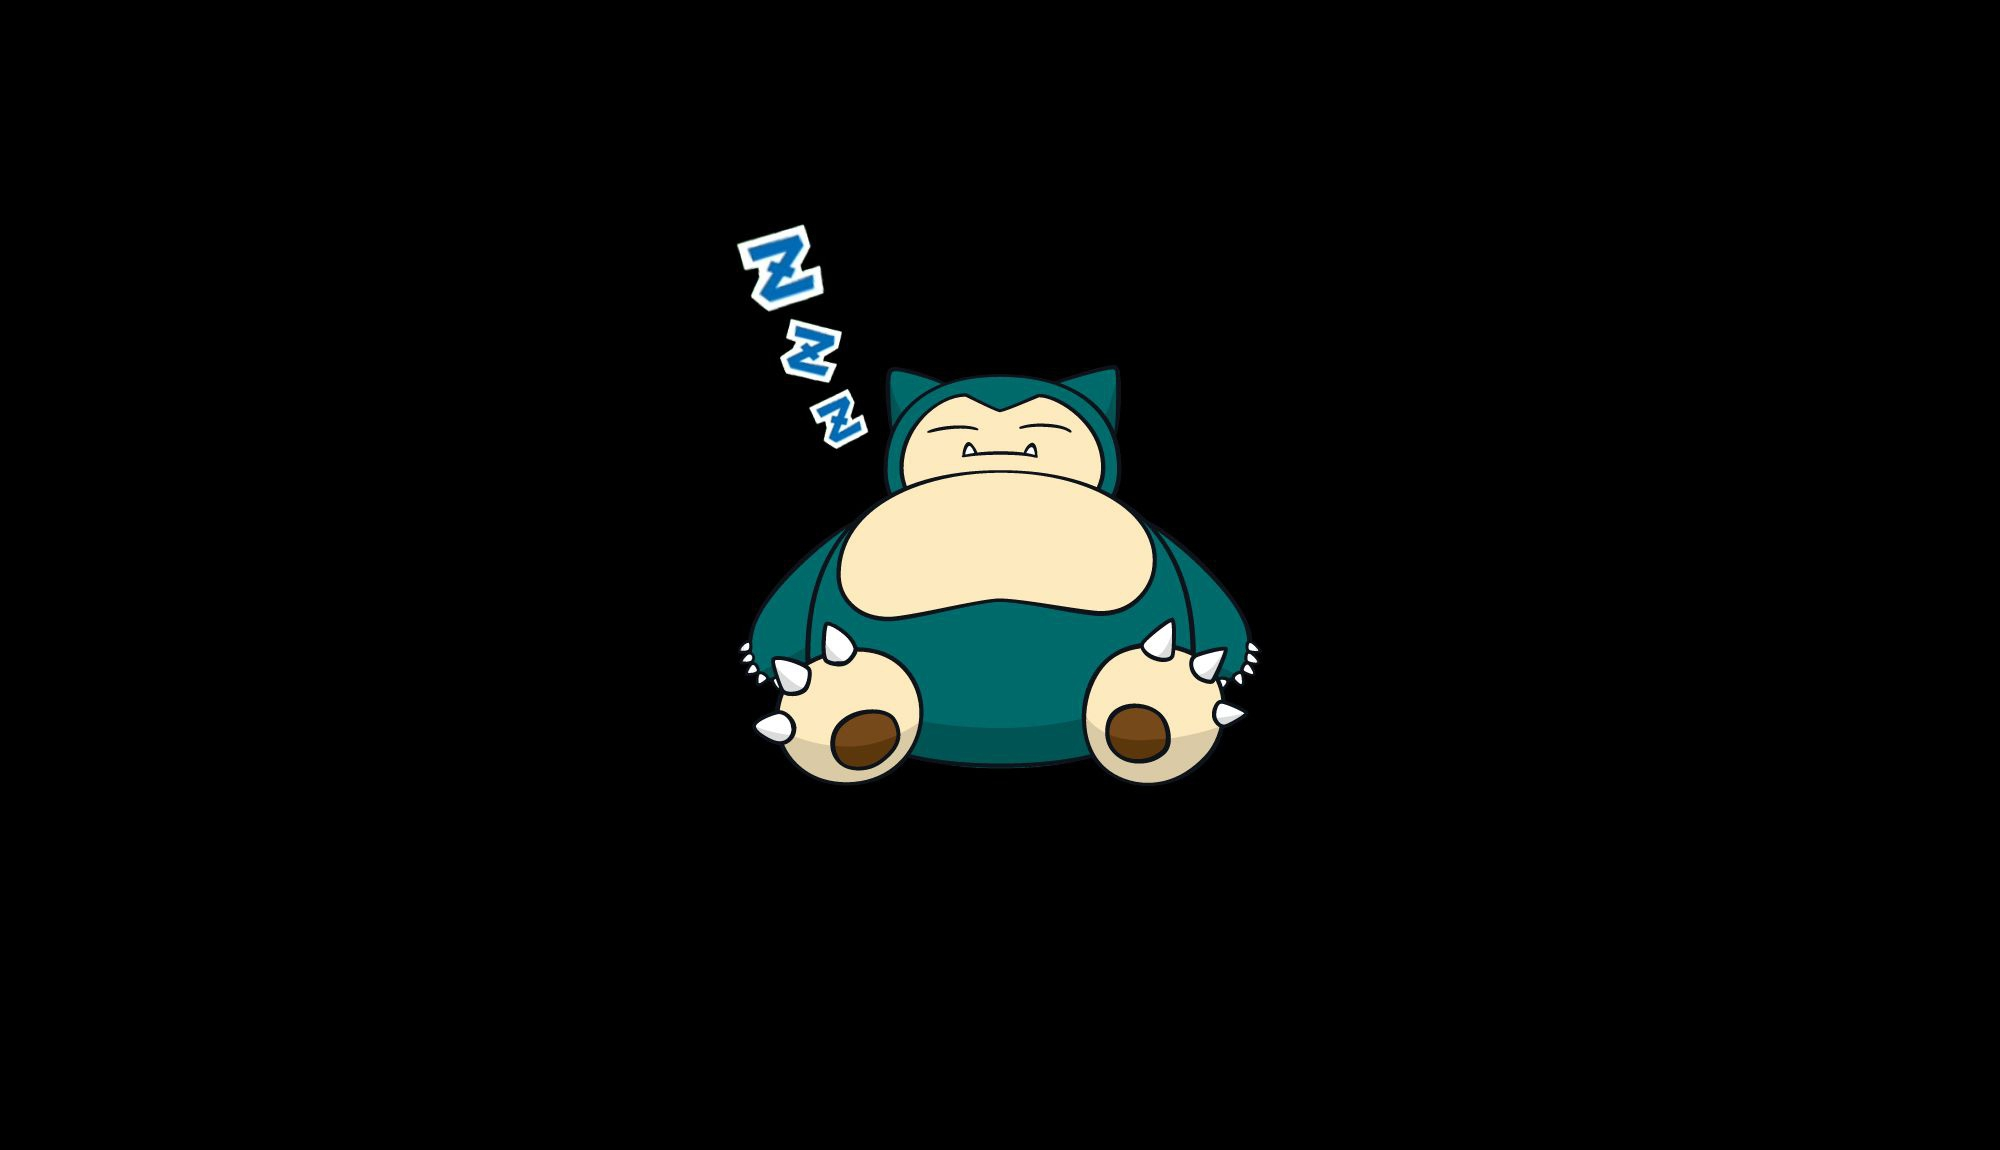 Snorlax Images